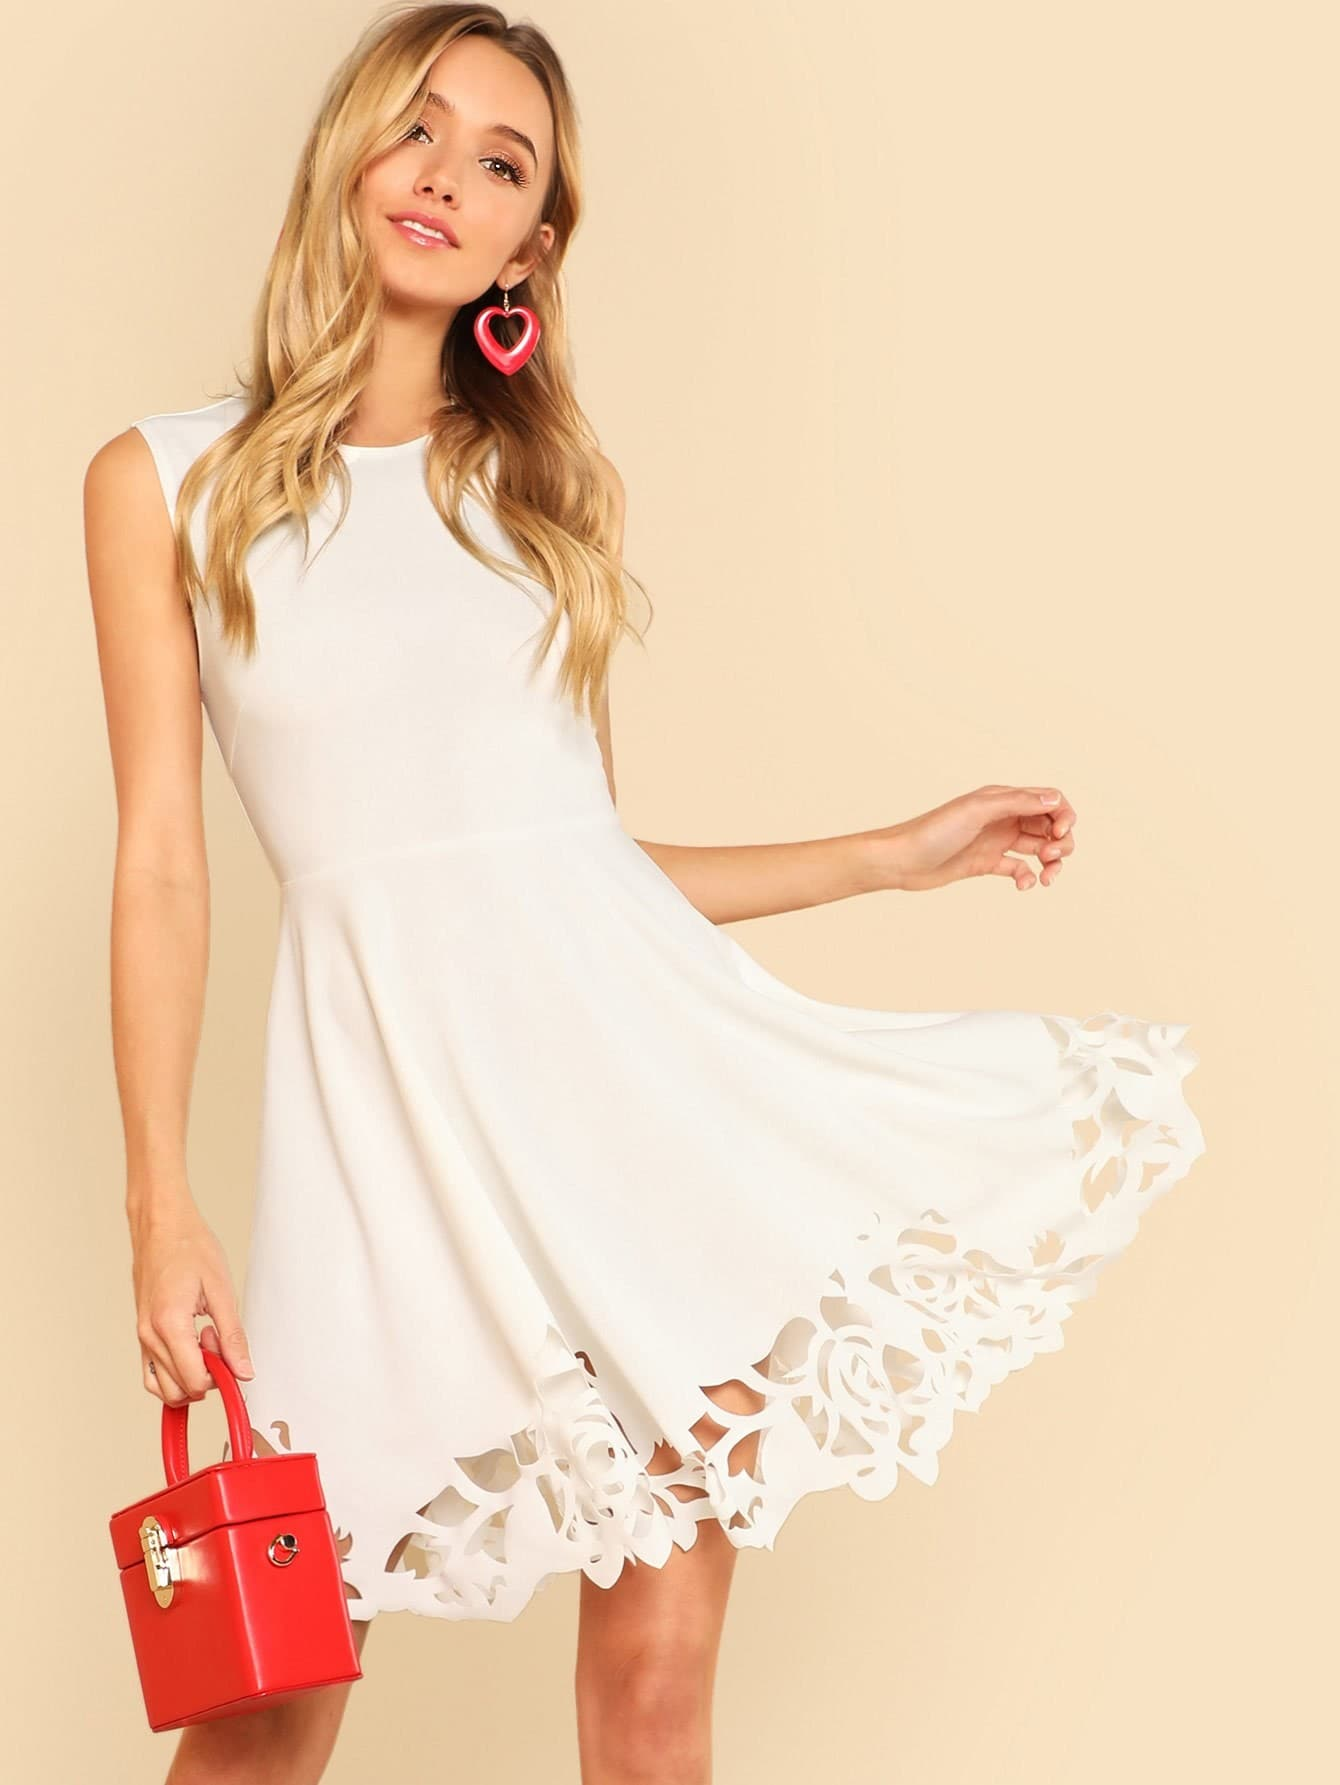 Cut Out Detail Fit And Flared Sleeveless Dress cut out detail fit and flared sleeveless dress